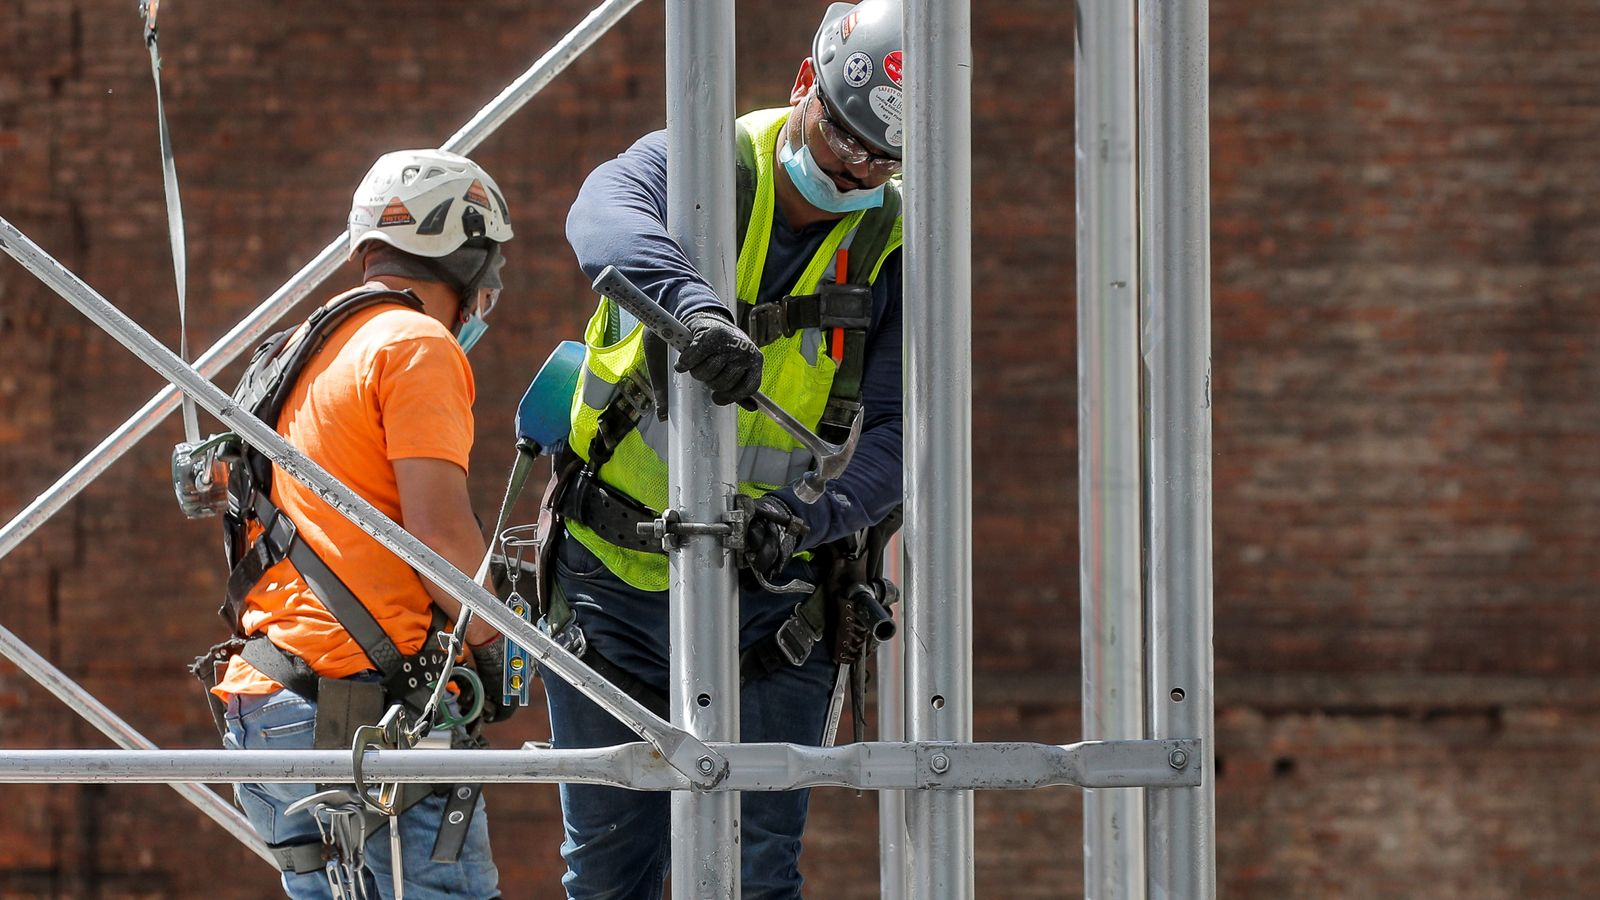 US companies hired nearly a million new workers in May, says report